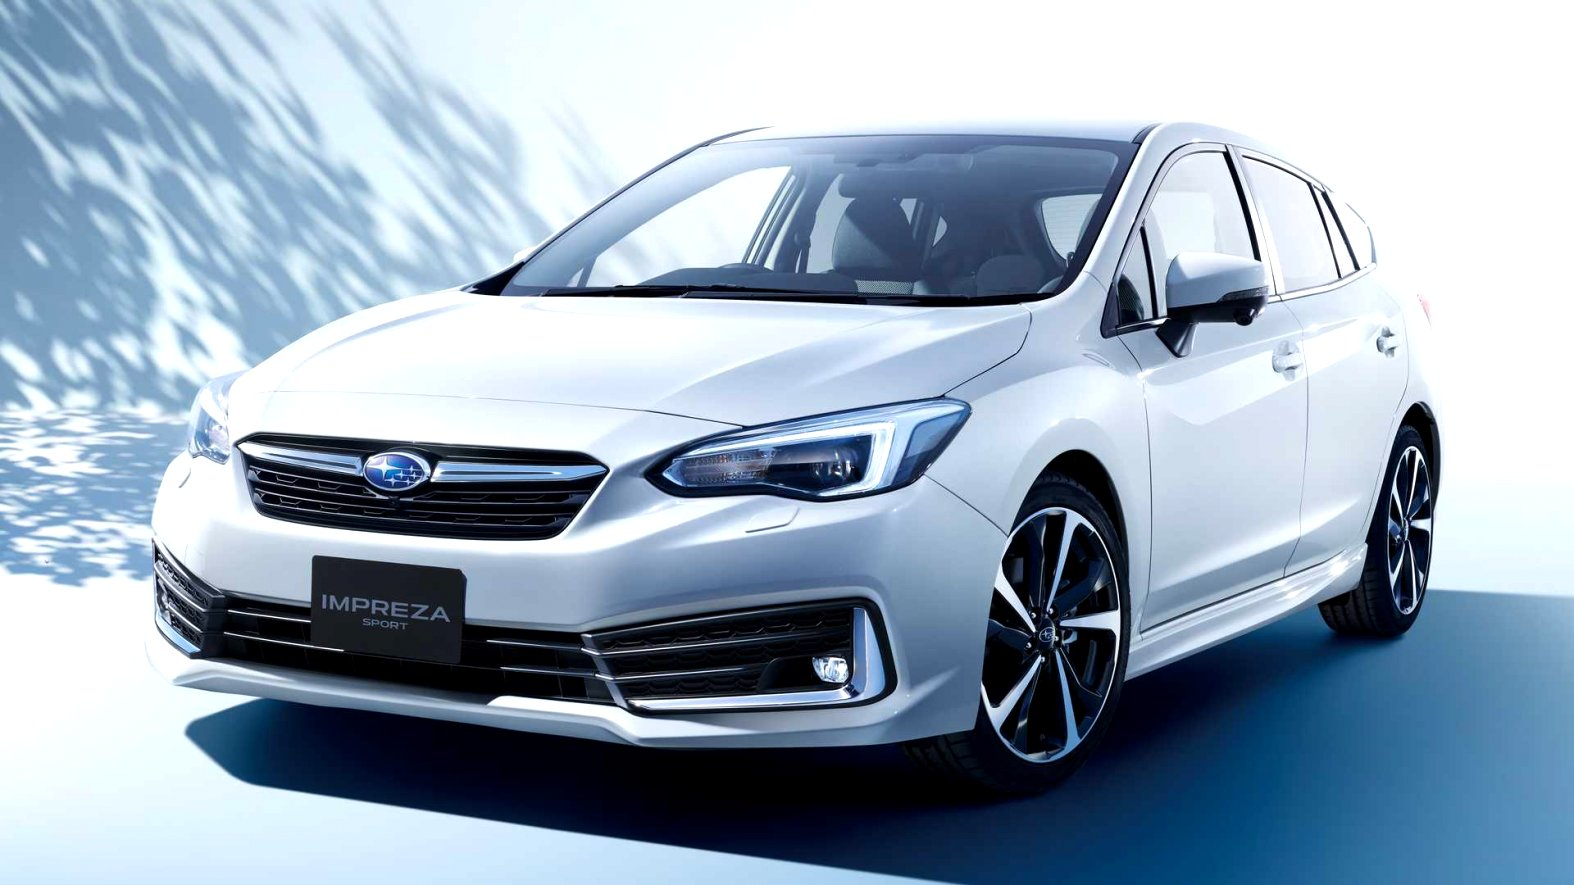 2020 subaru impreza specs Exterior and Interior